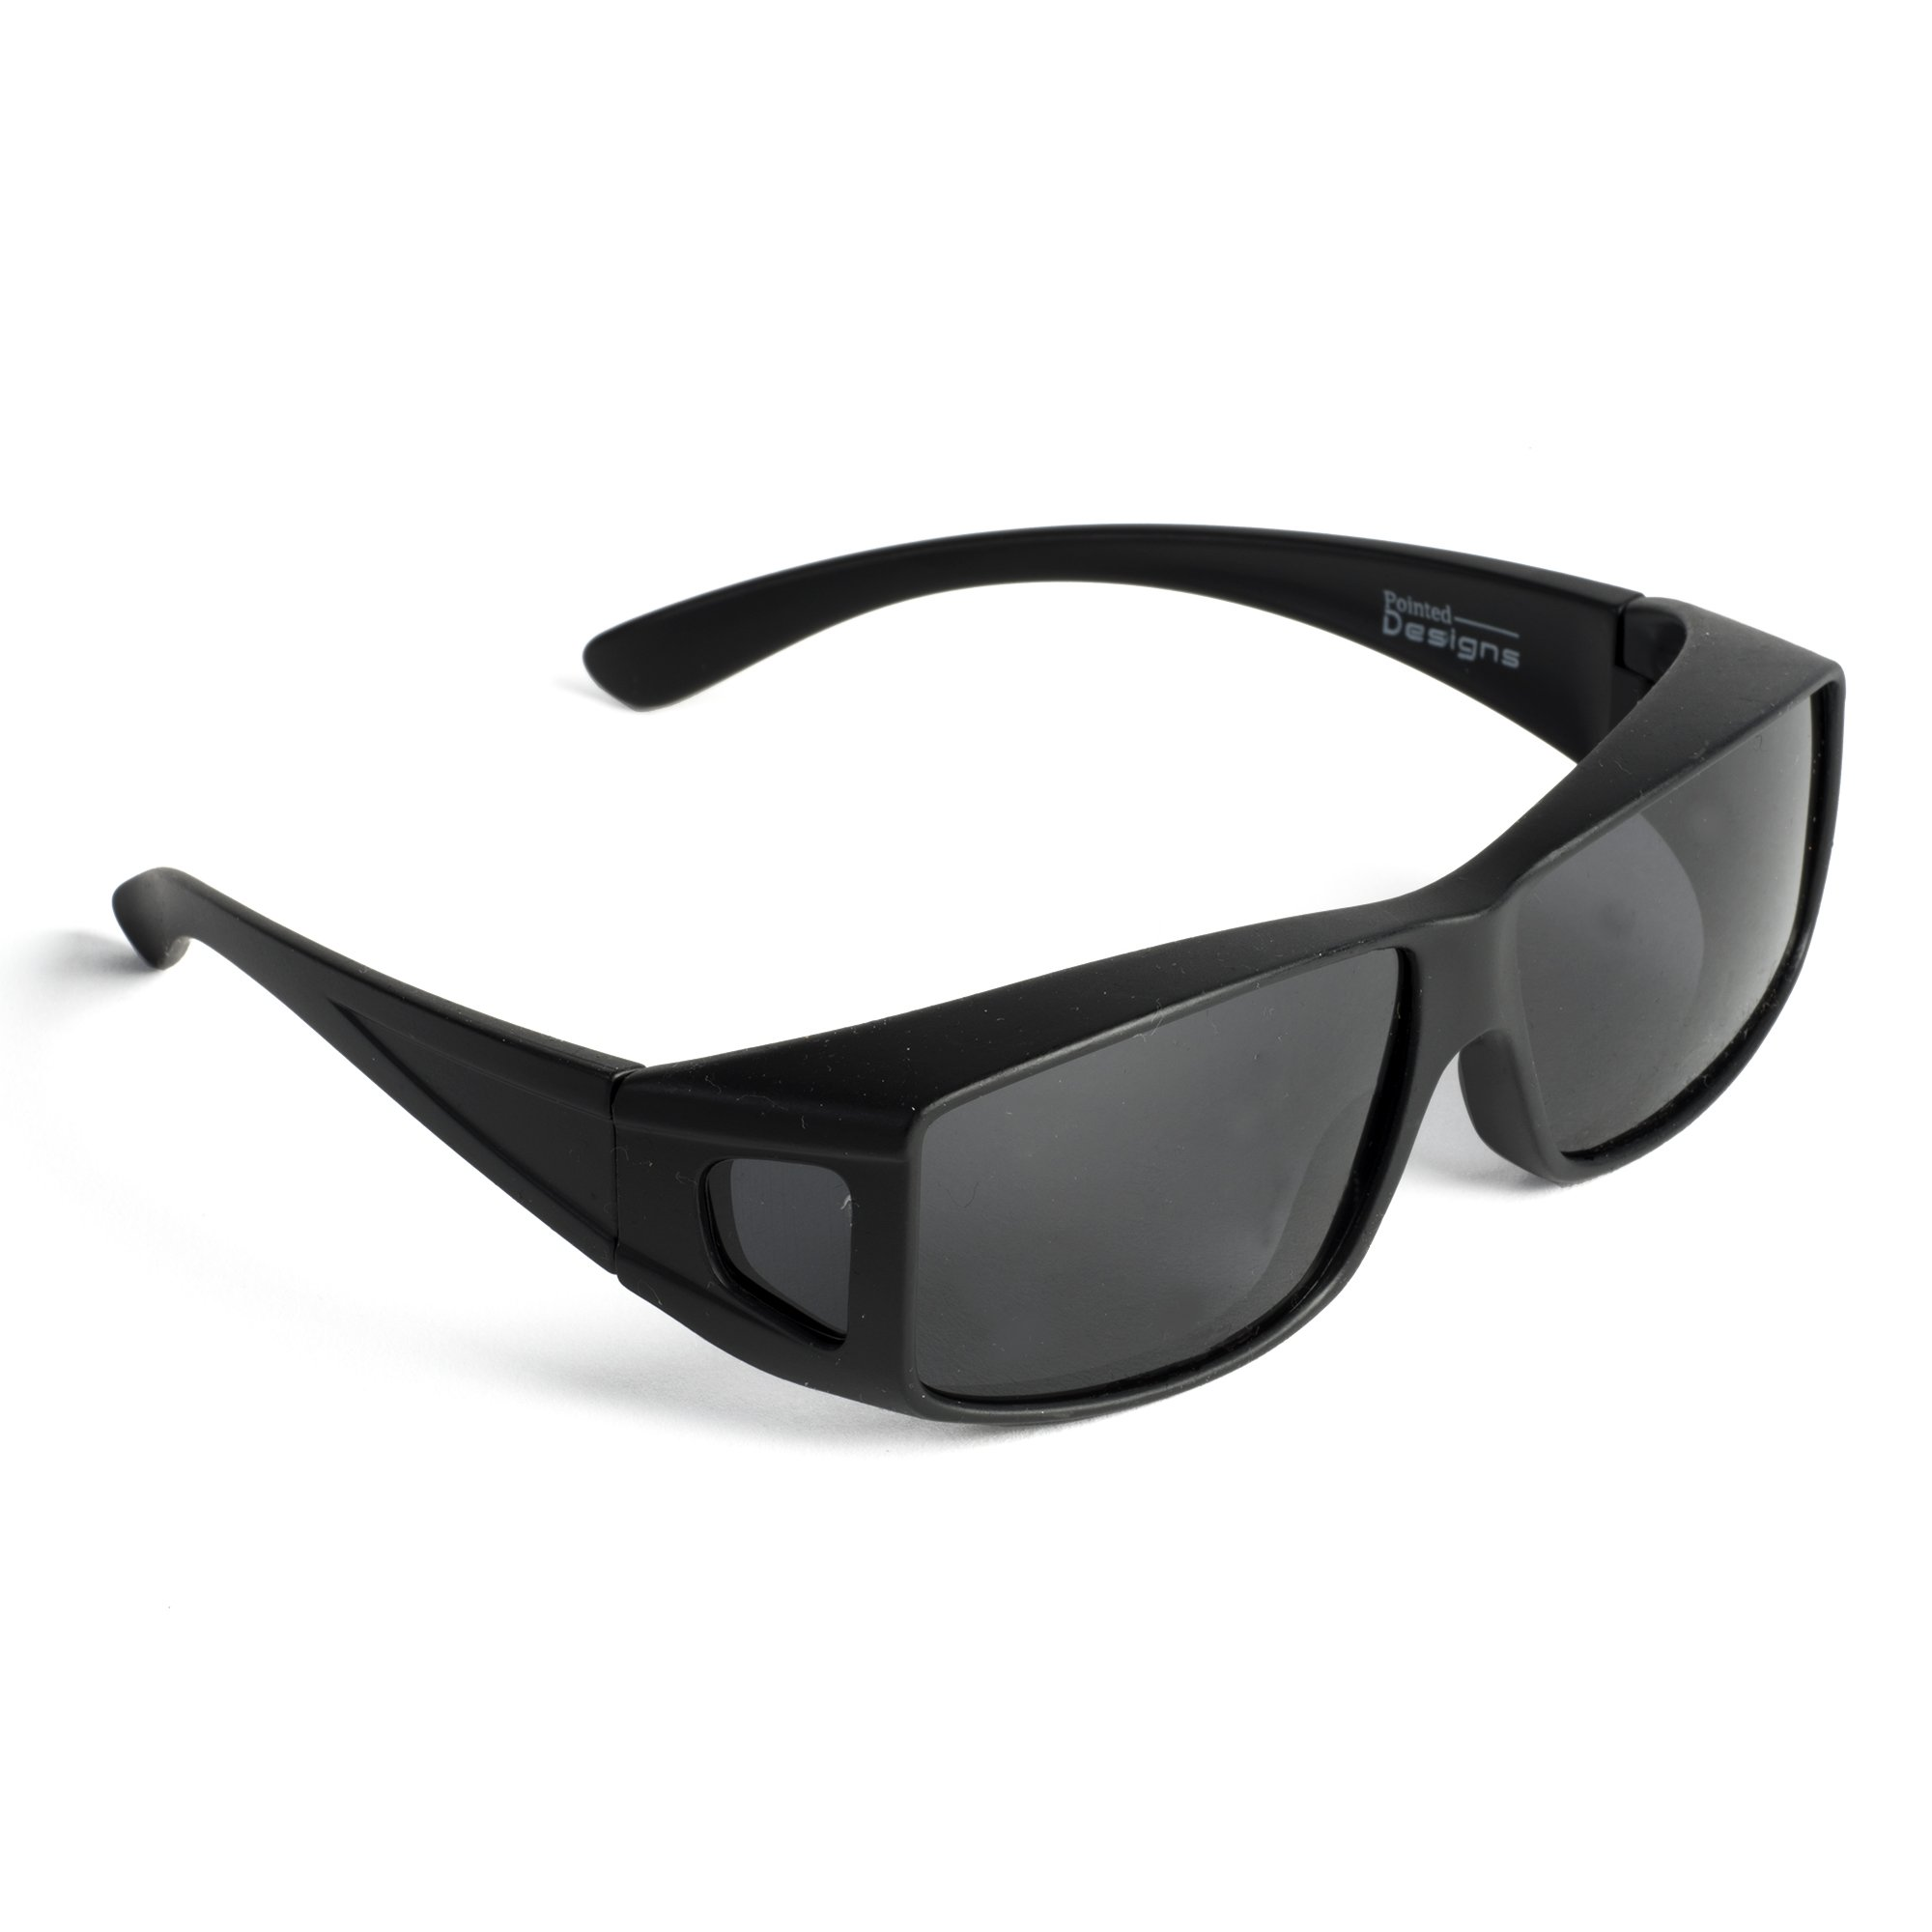 Over Glasses Sunglasses - Polarized Fitover Sunglasses with 100% UV Protection - Style 2 By Pointed Designs (Black)